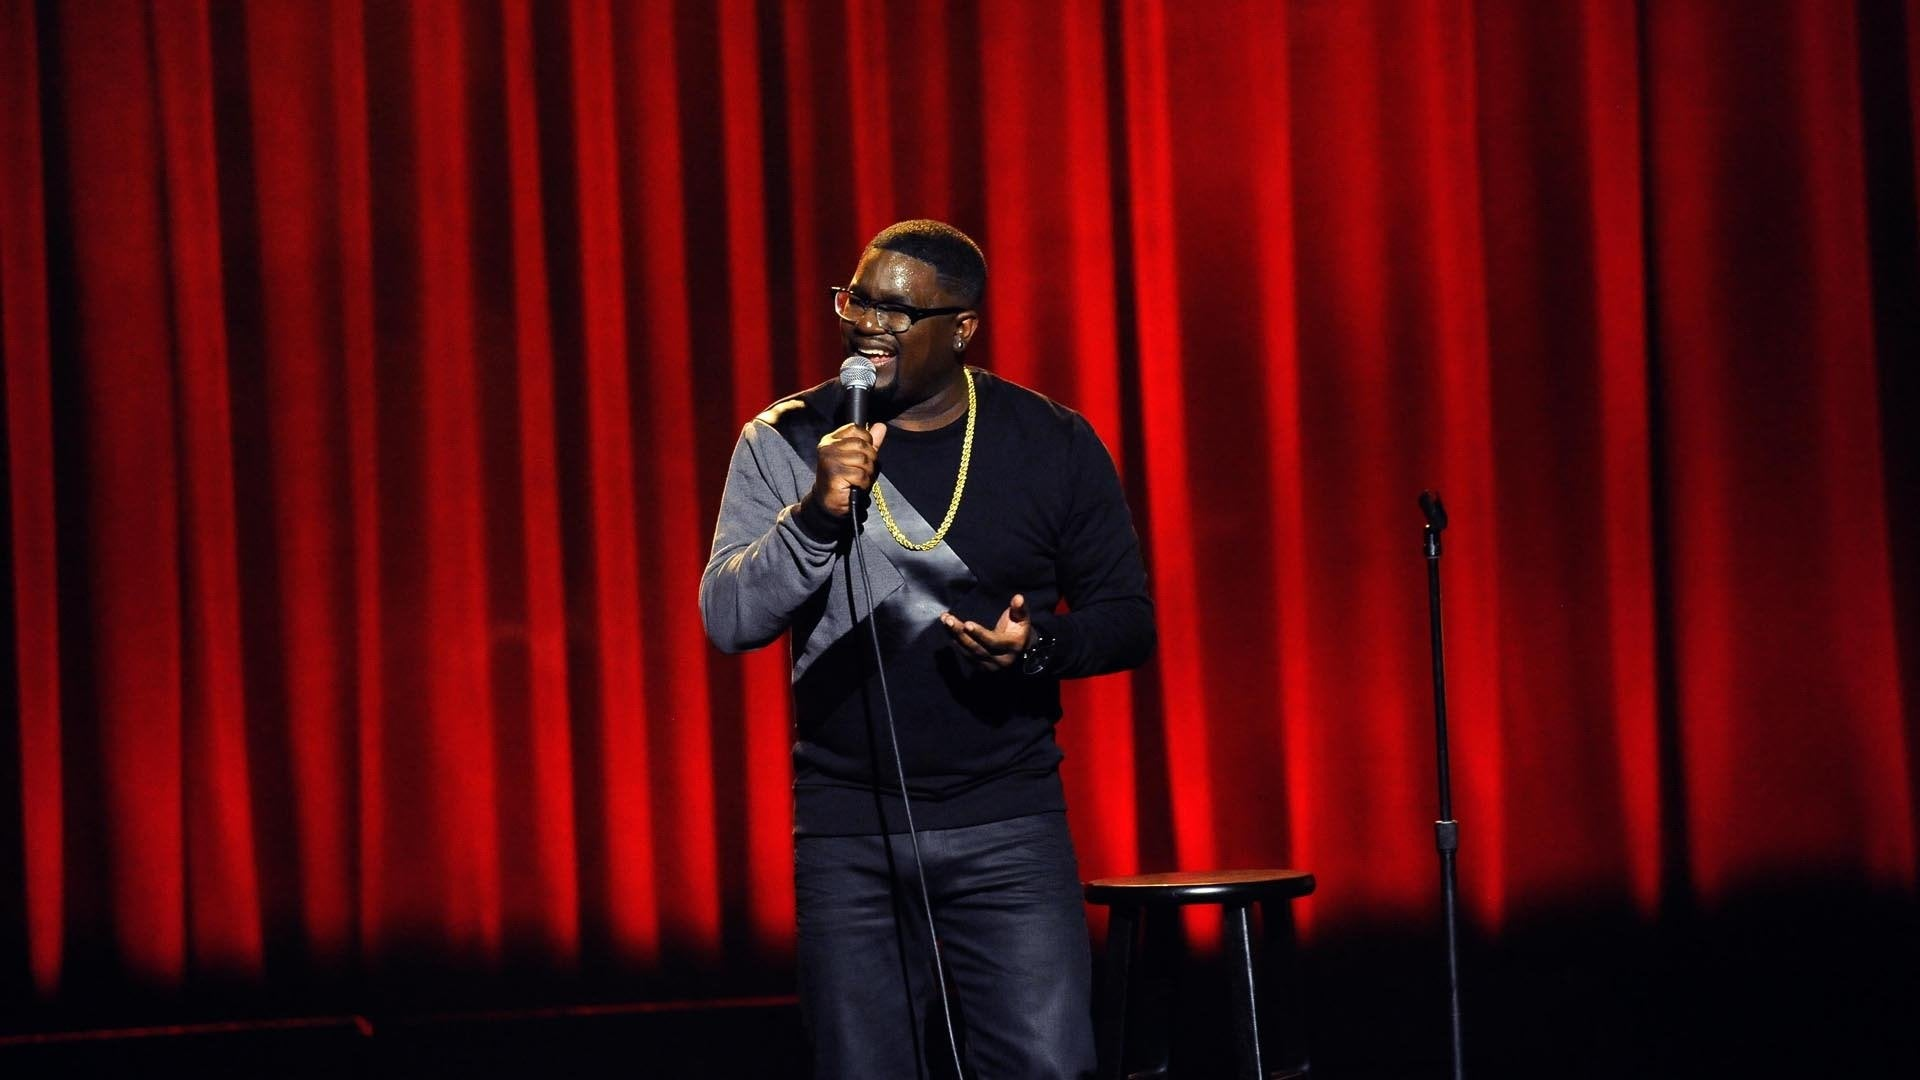 Kevin Hart Presents: Lil Rel Howery: Relevent